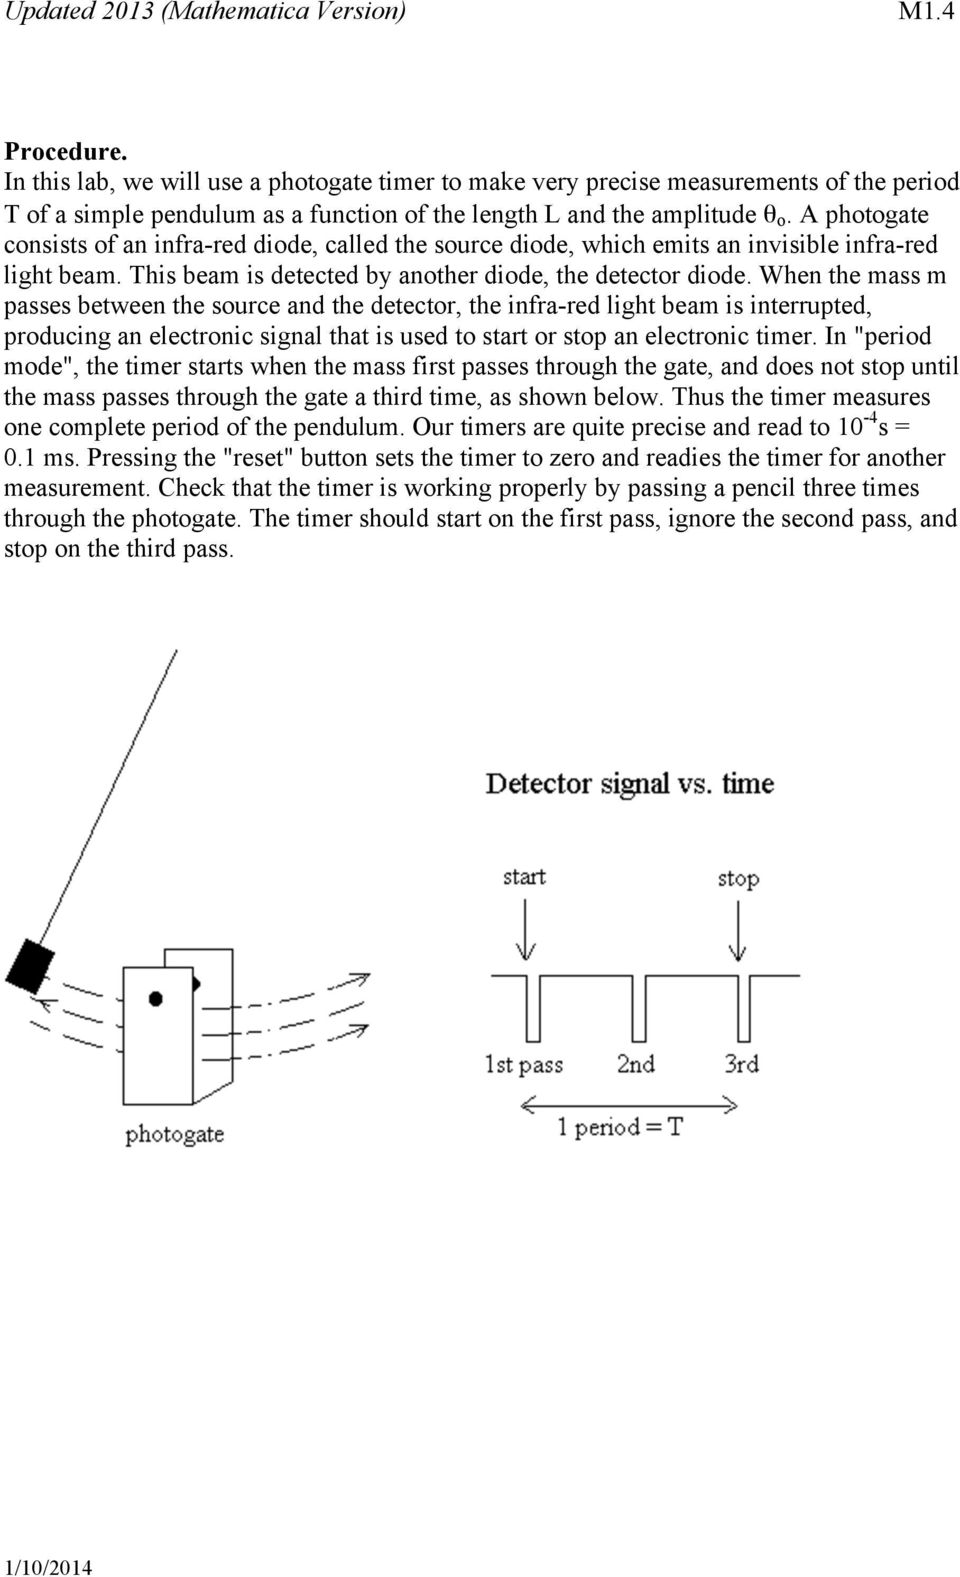 A photogate consists of an infra-red diode, called the source diode, which emits an invisible infra-red light beam. This beam is detected by another diode, the detector diode.